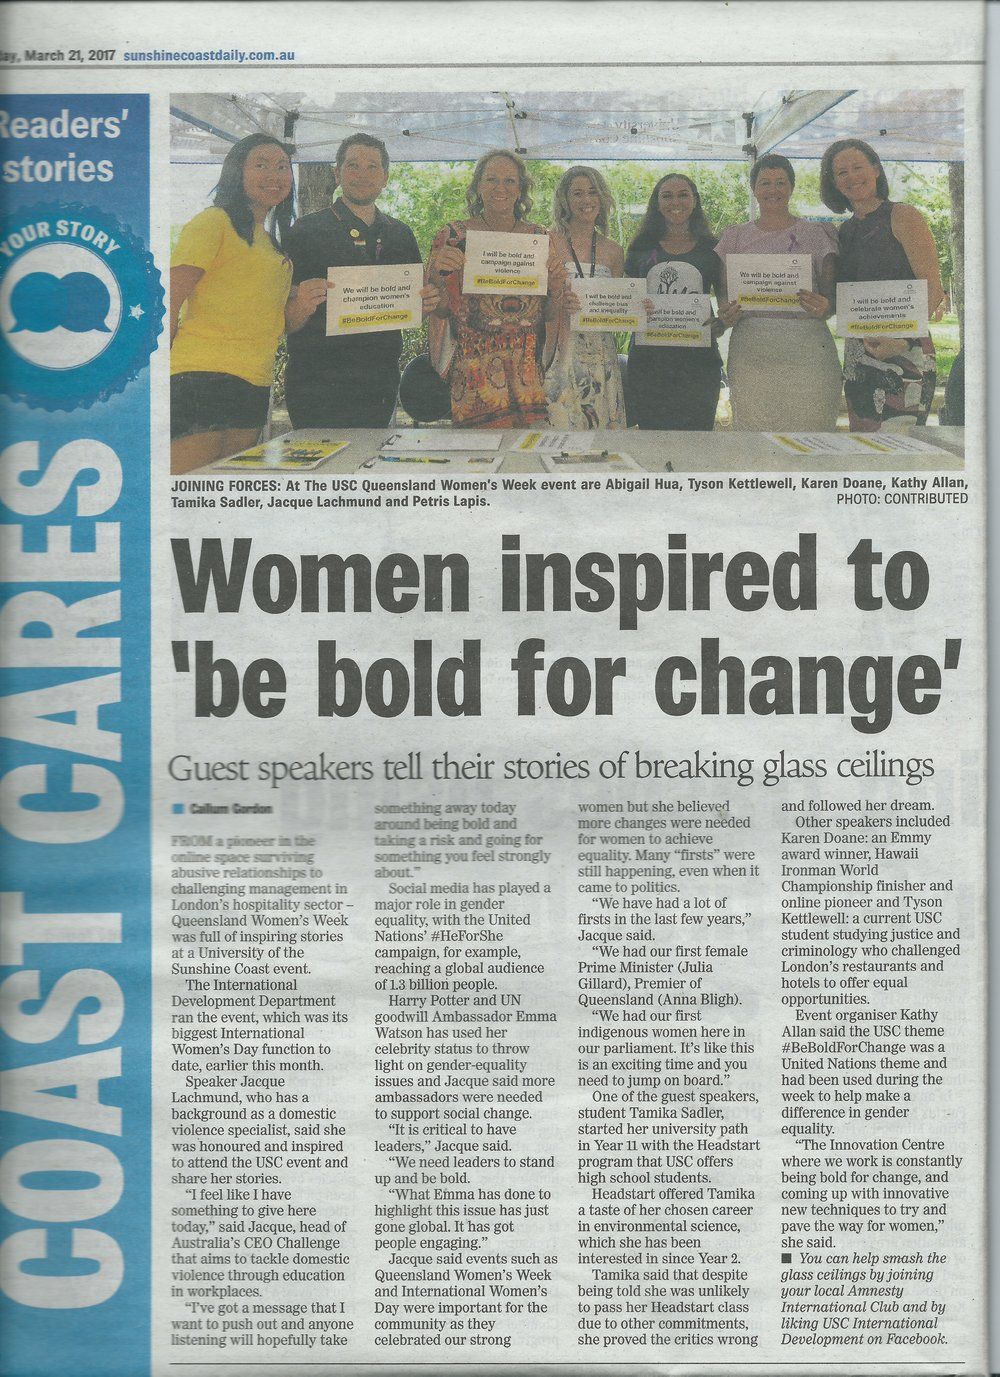 Women inspired to 'be bold for change'